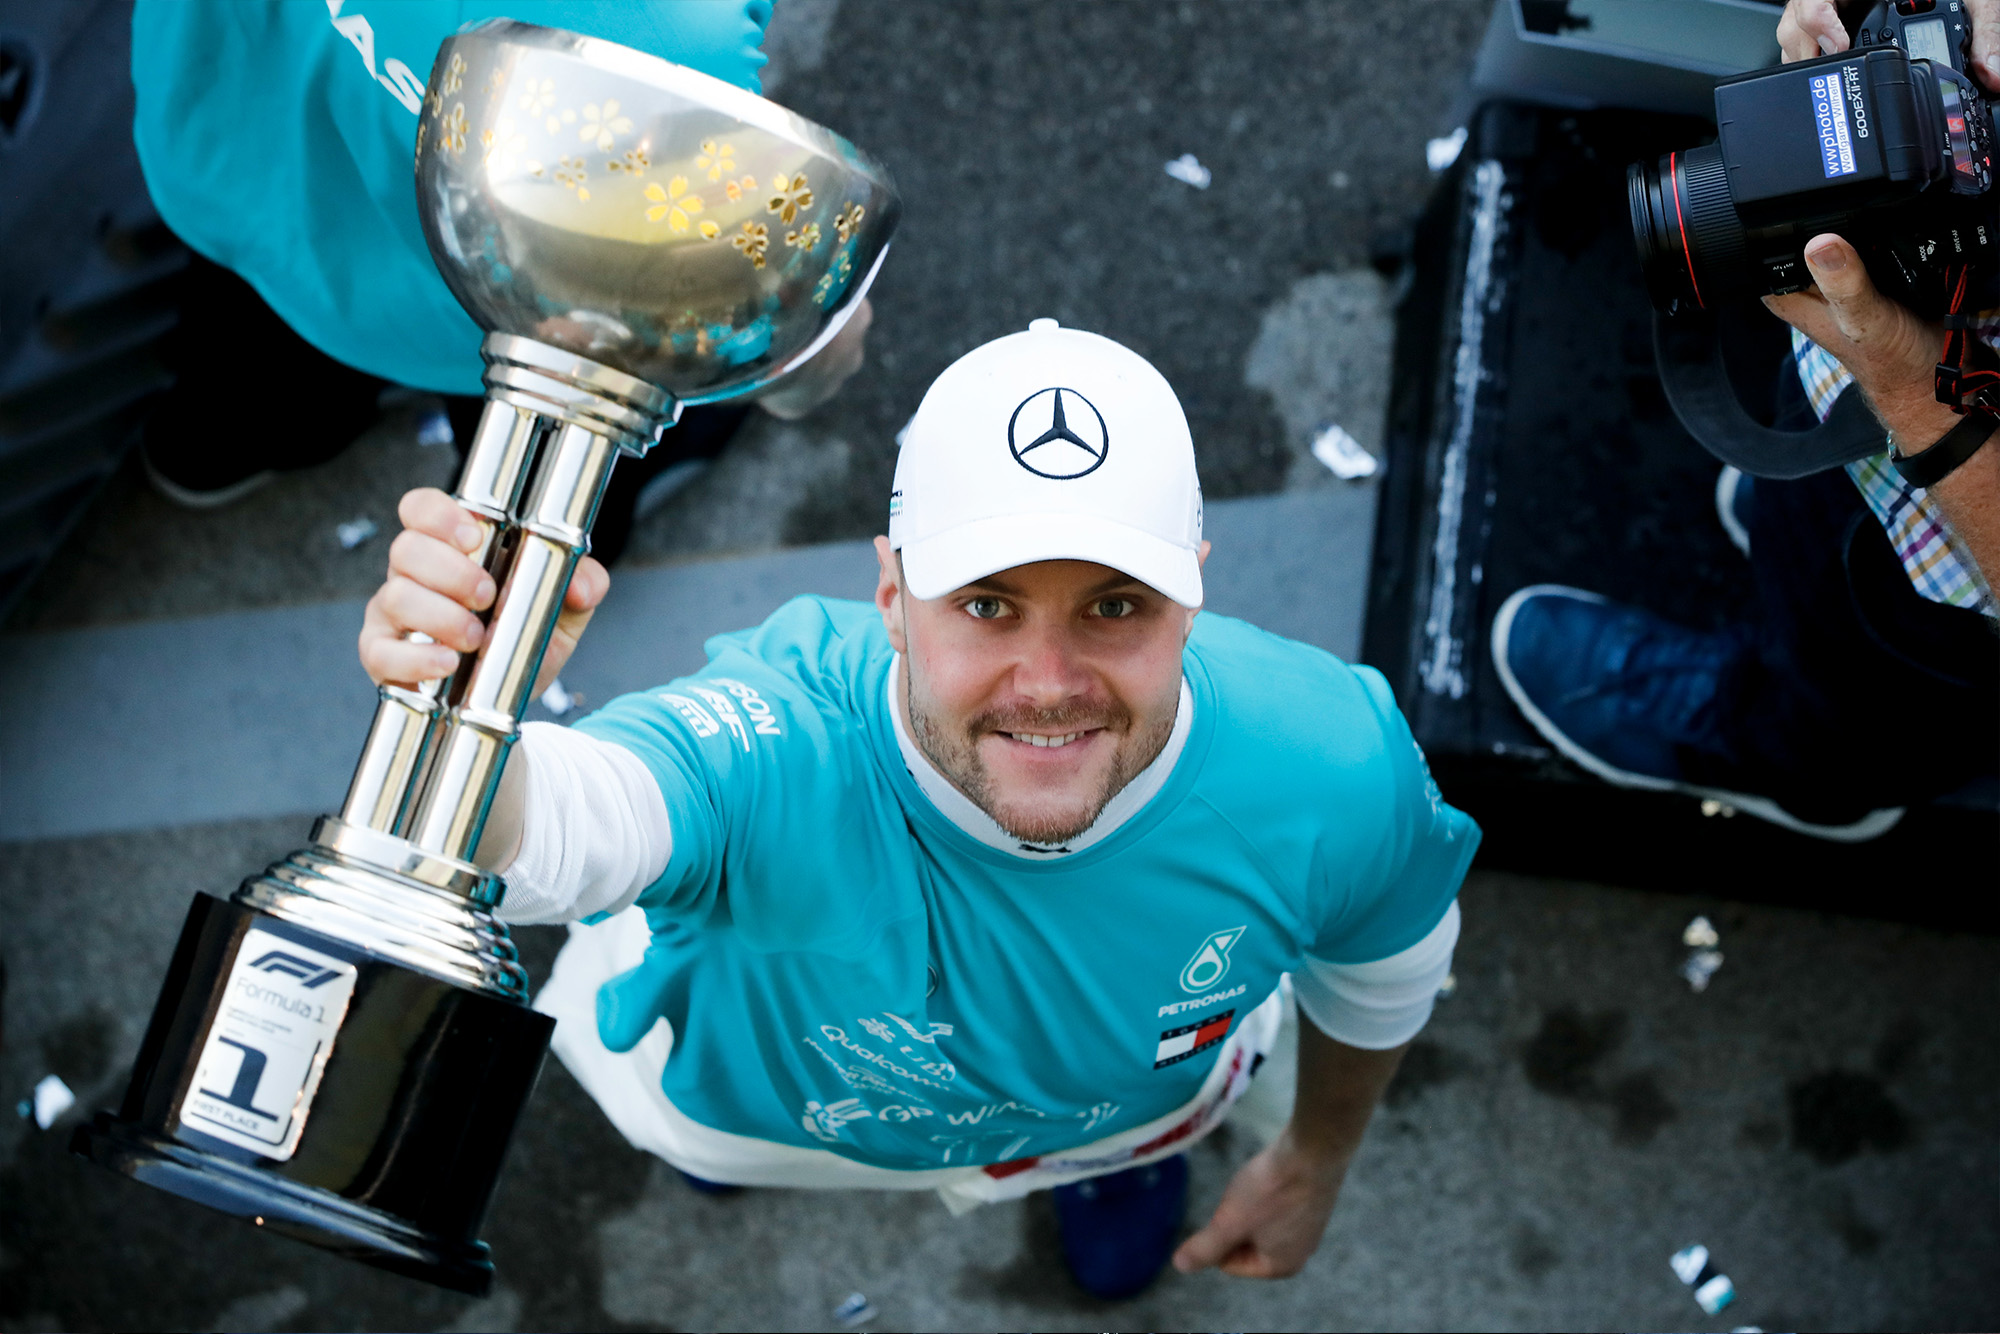 Valtteri Bottas holds his winning trophy from the 2019 Japanese Grand Prix